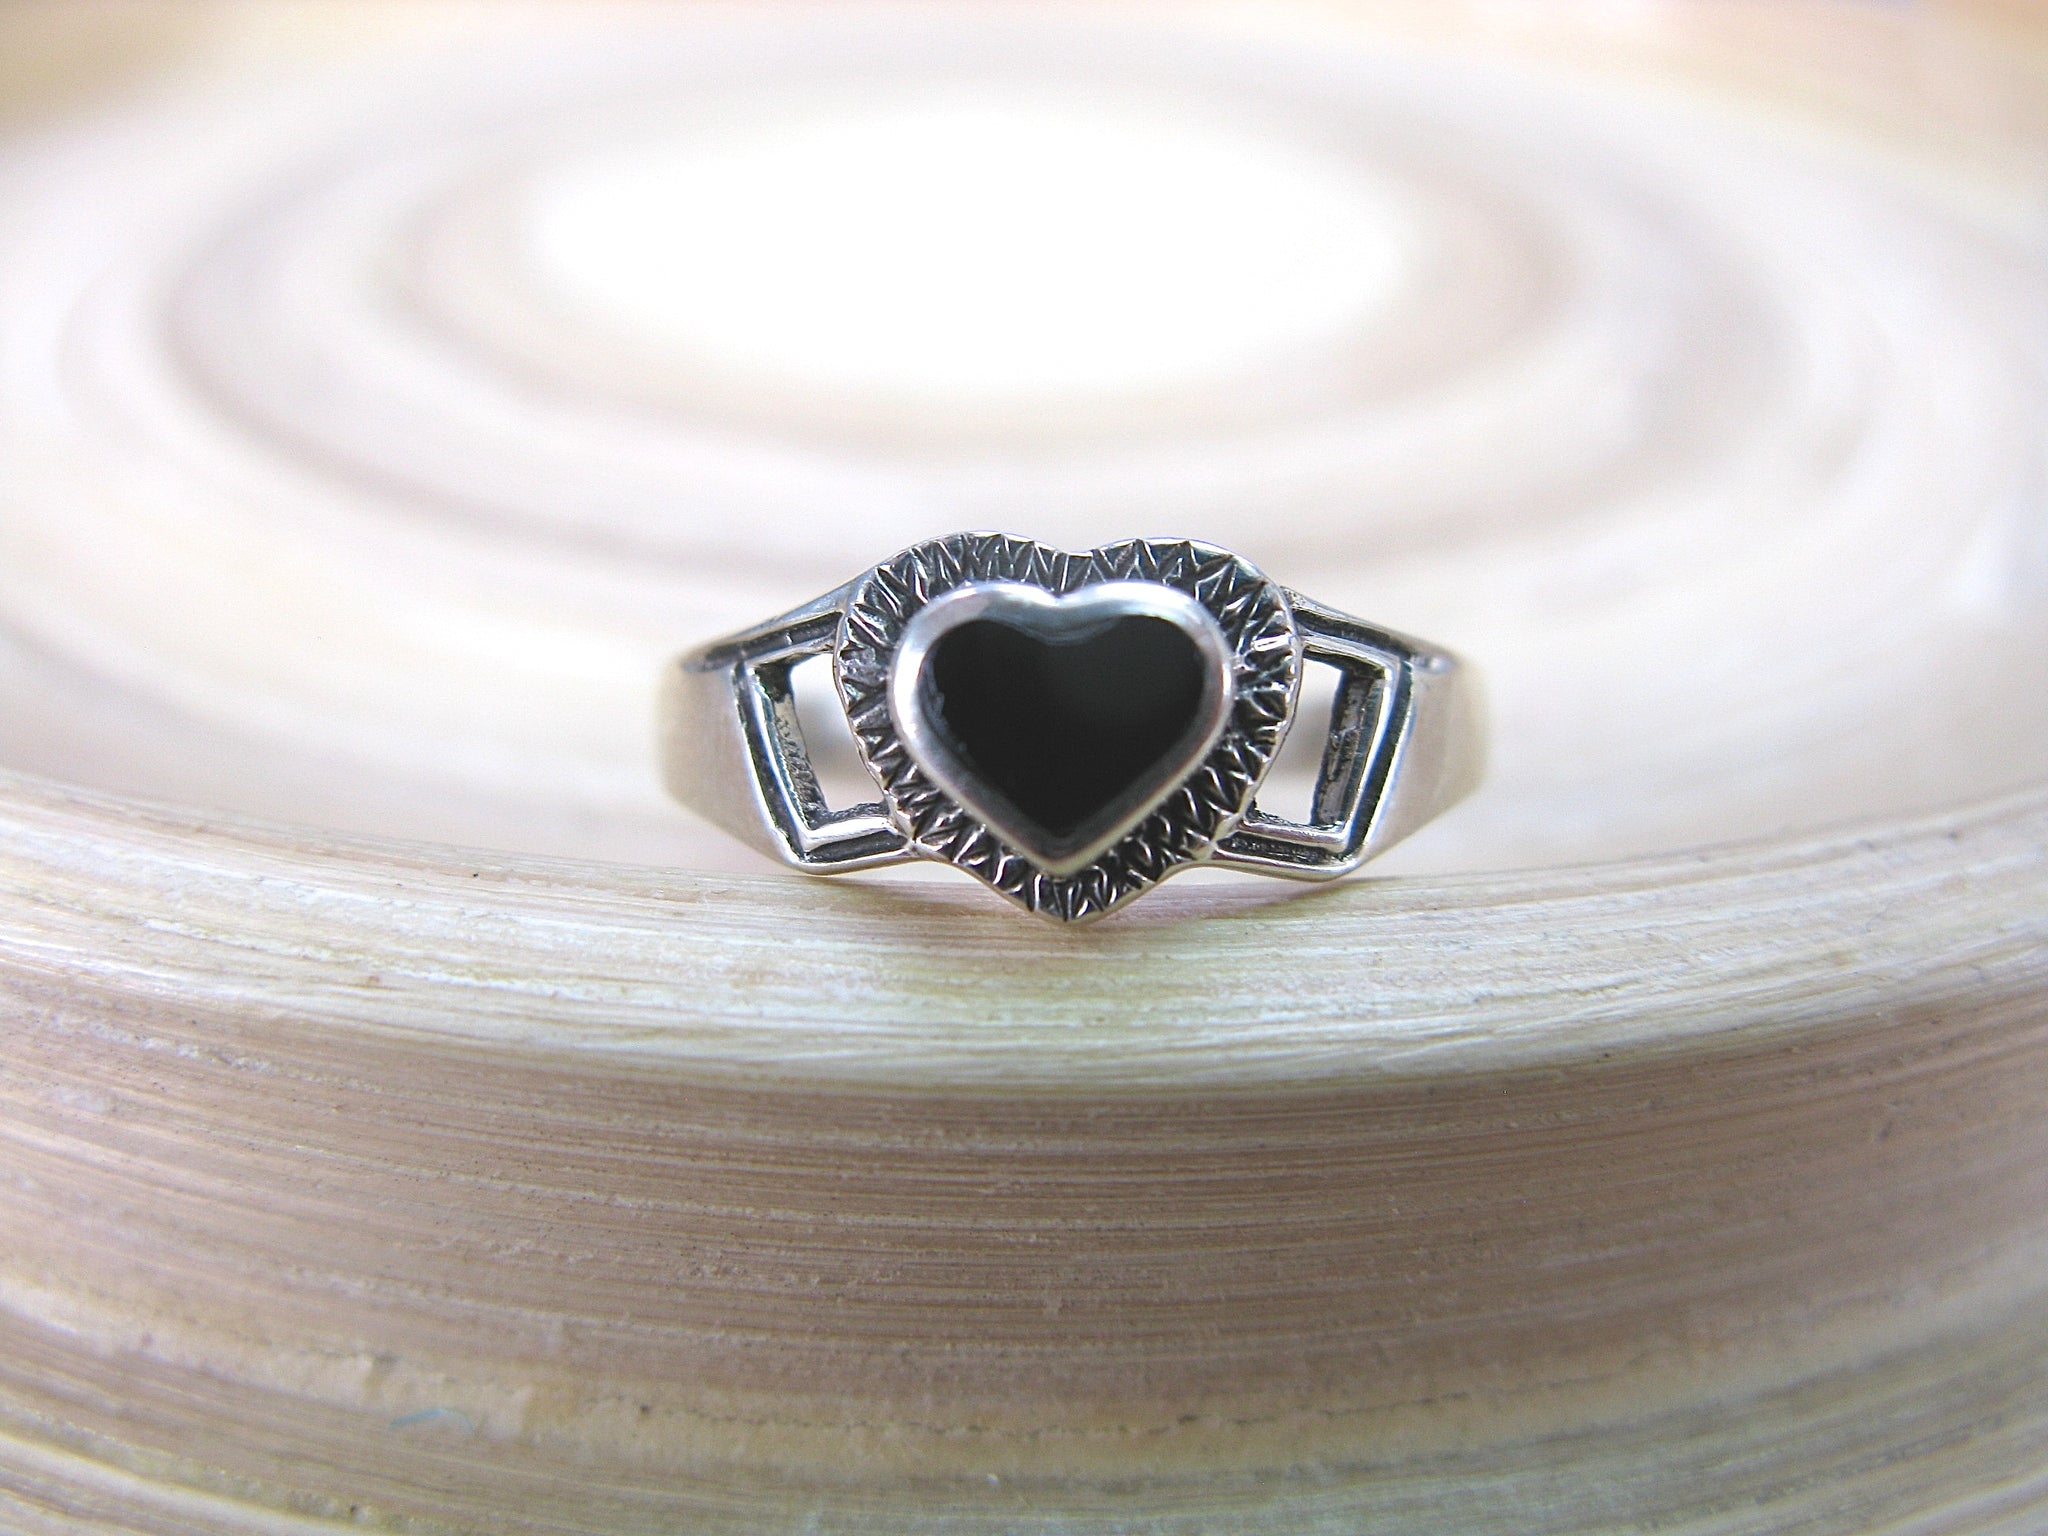 Onyx Heart Oxidized Ring in 925 Sterling Silver